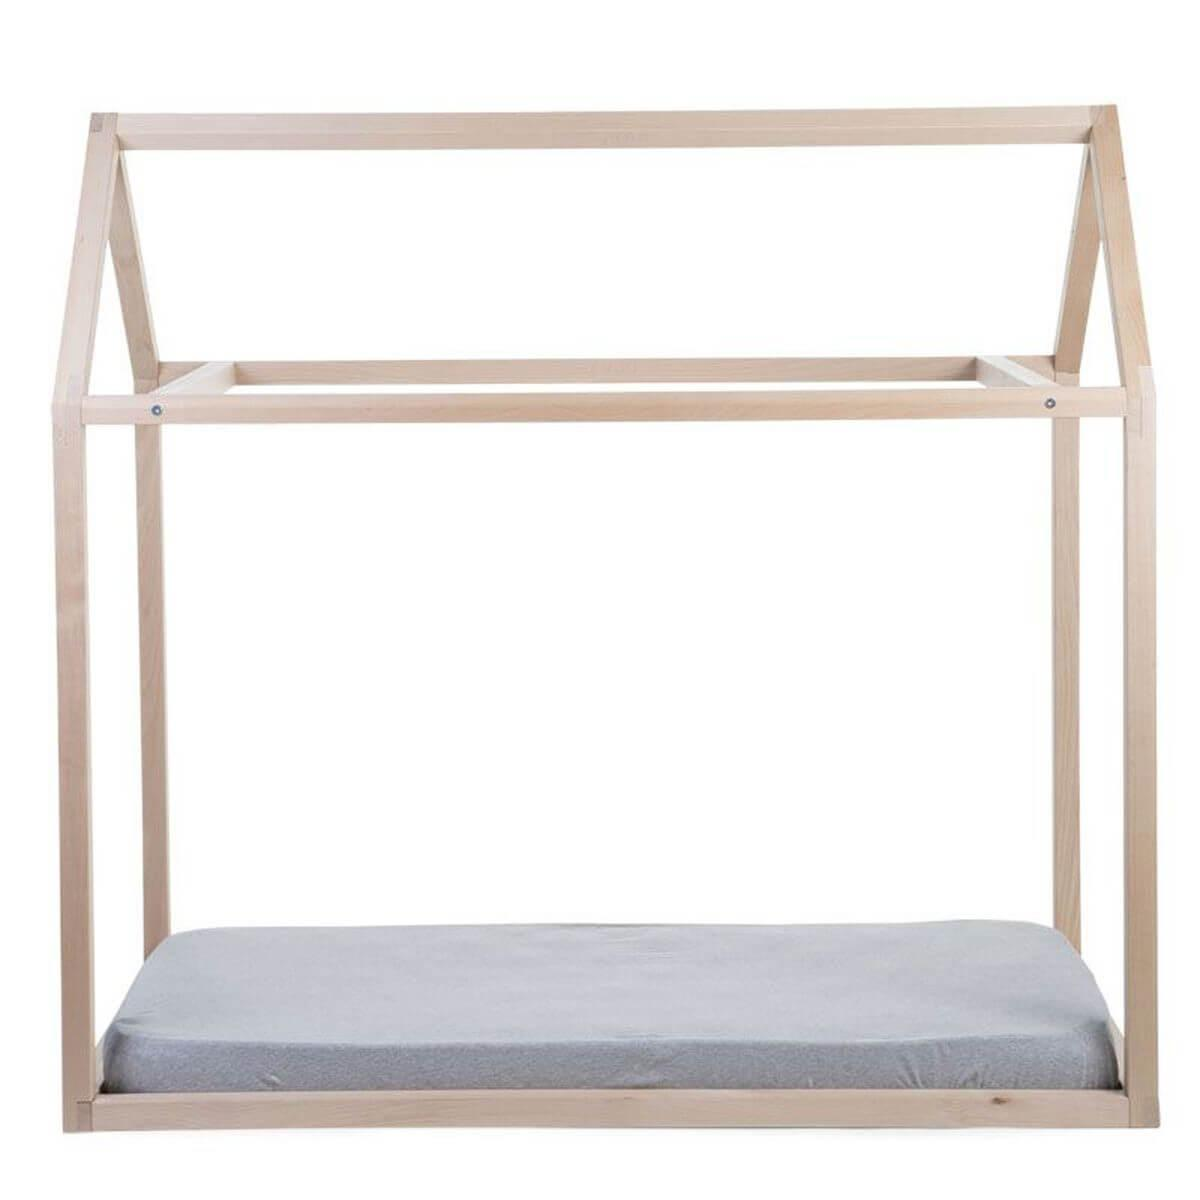 Lit-maison 70x140cm Childhome naturel